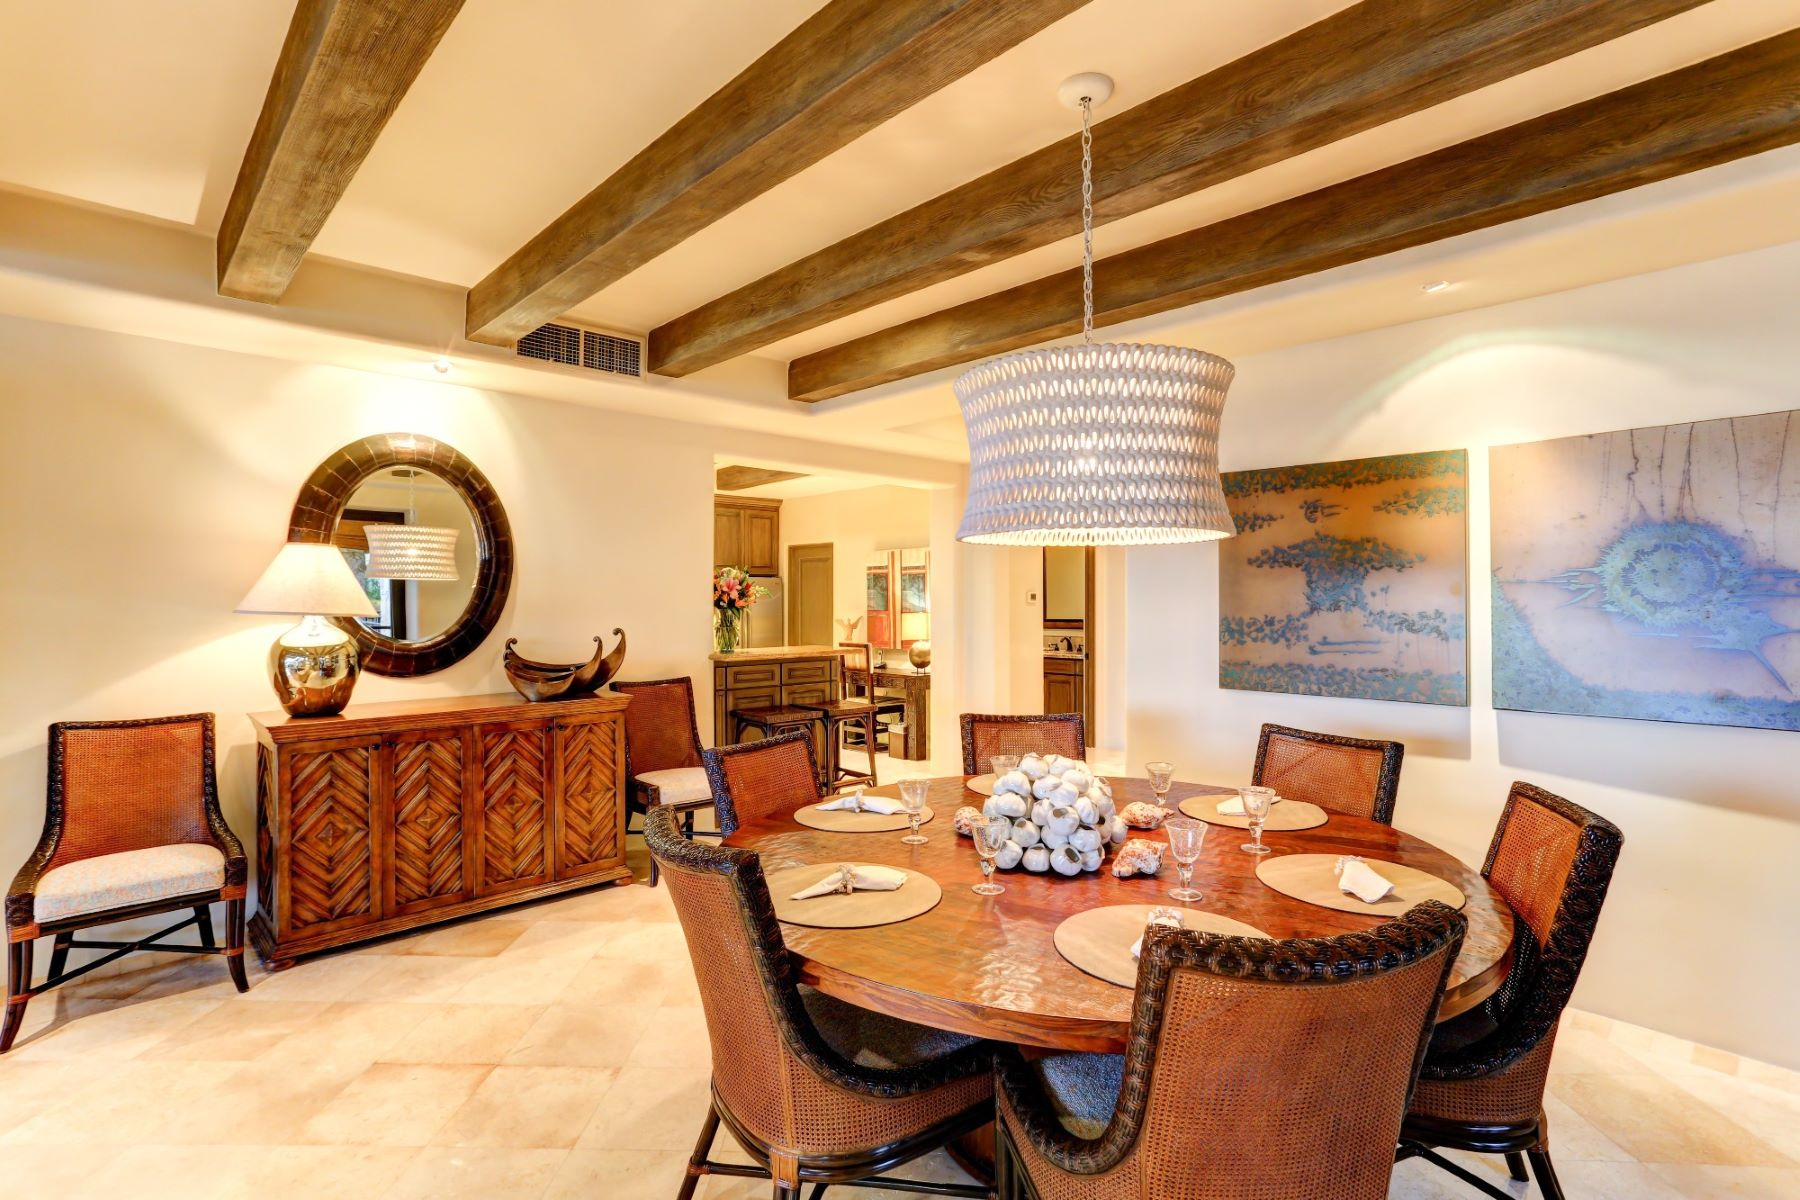 Additional photo for property listing at Residence 1-202 Cabo San Lucas, Baja California Sur México